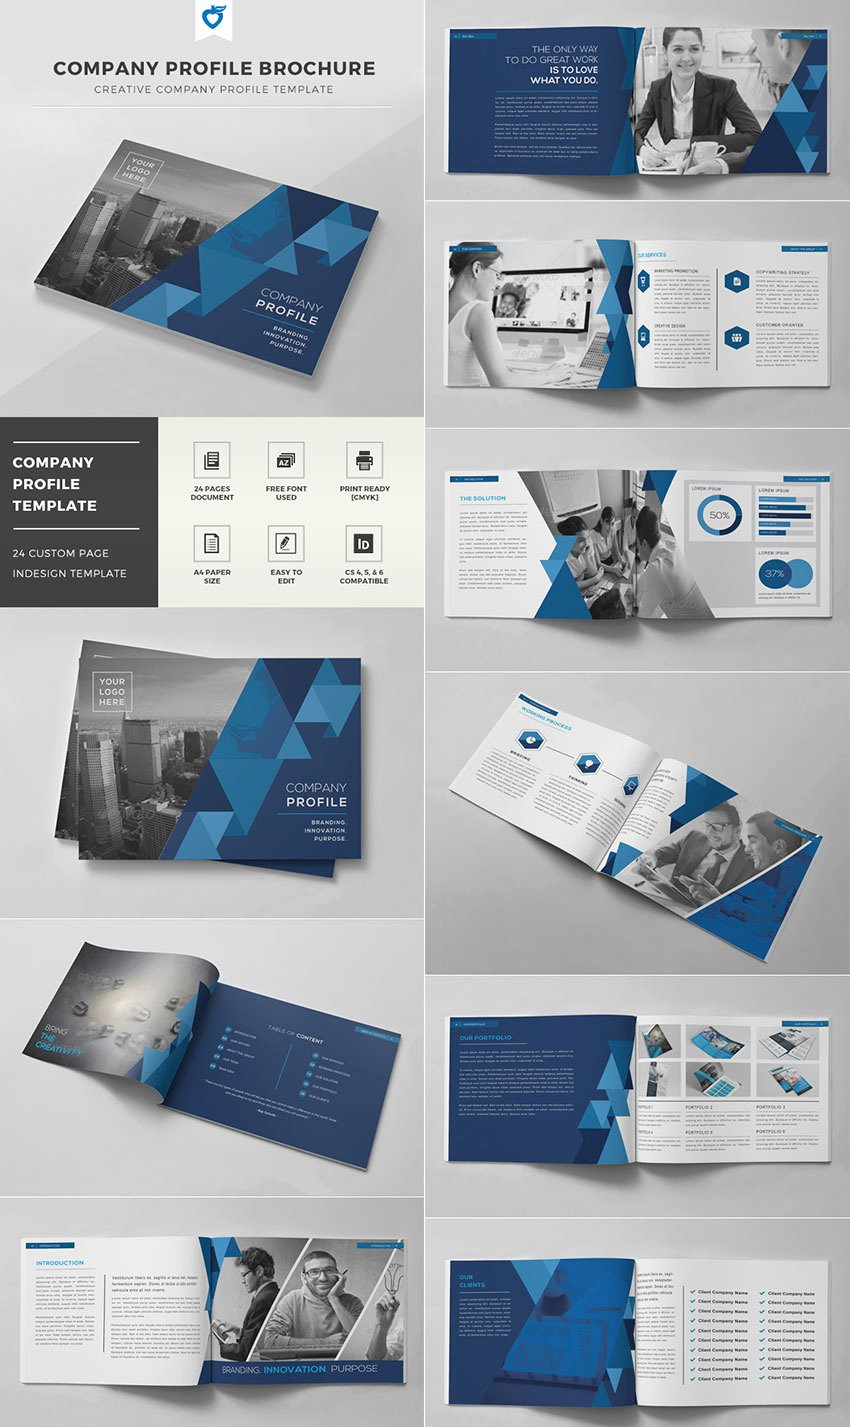 20 Best Indesign Brochure Templates for Creative